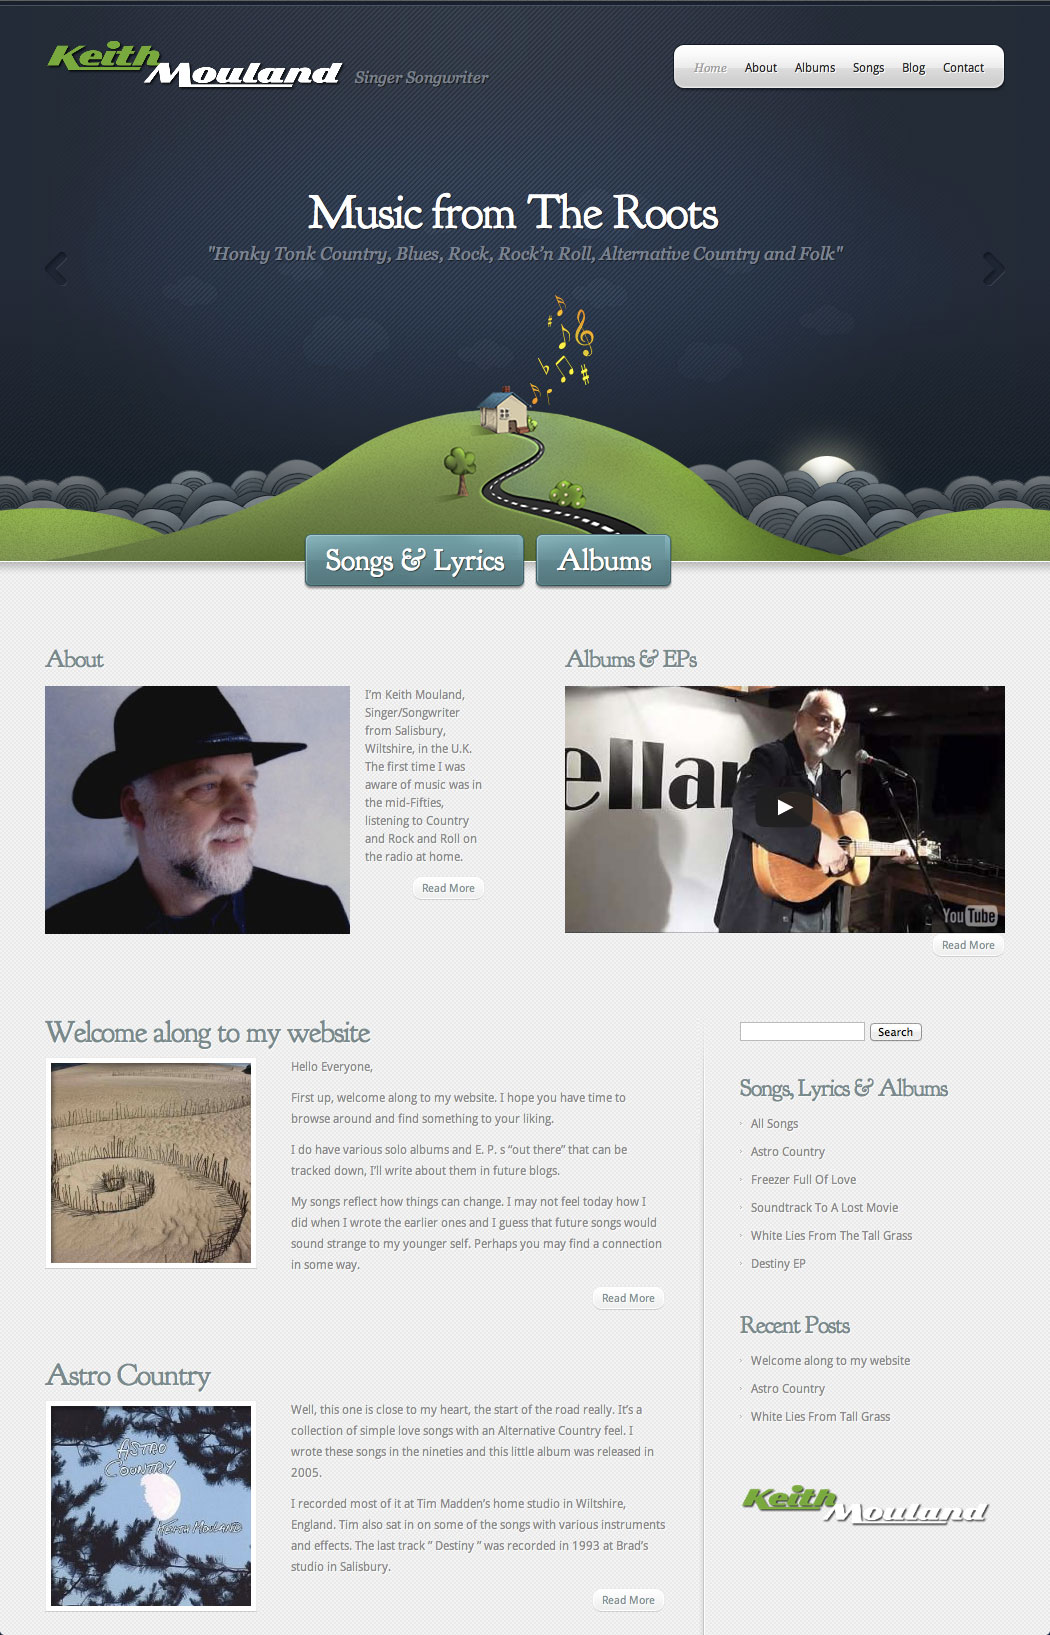 Keith Mouland – Singer Songwriter